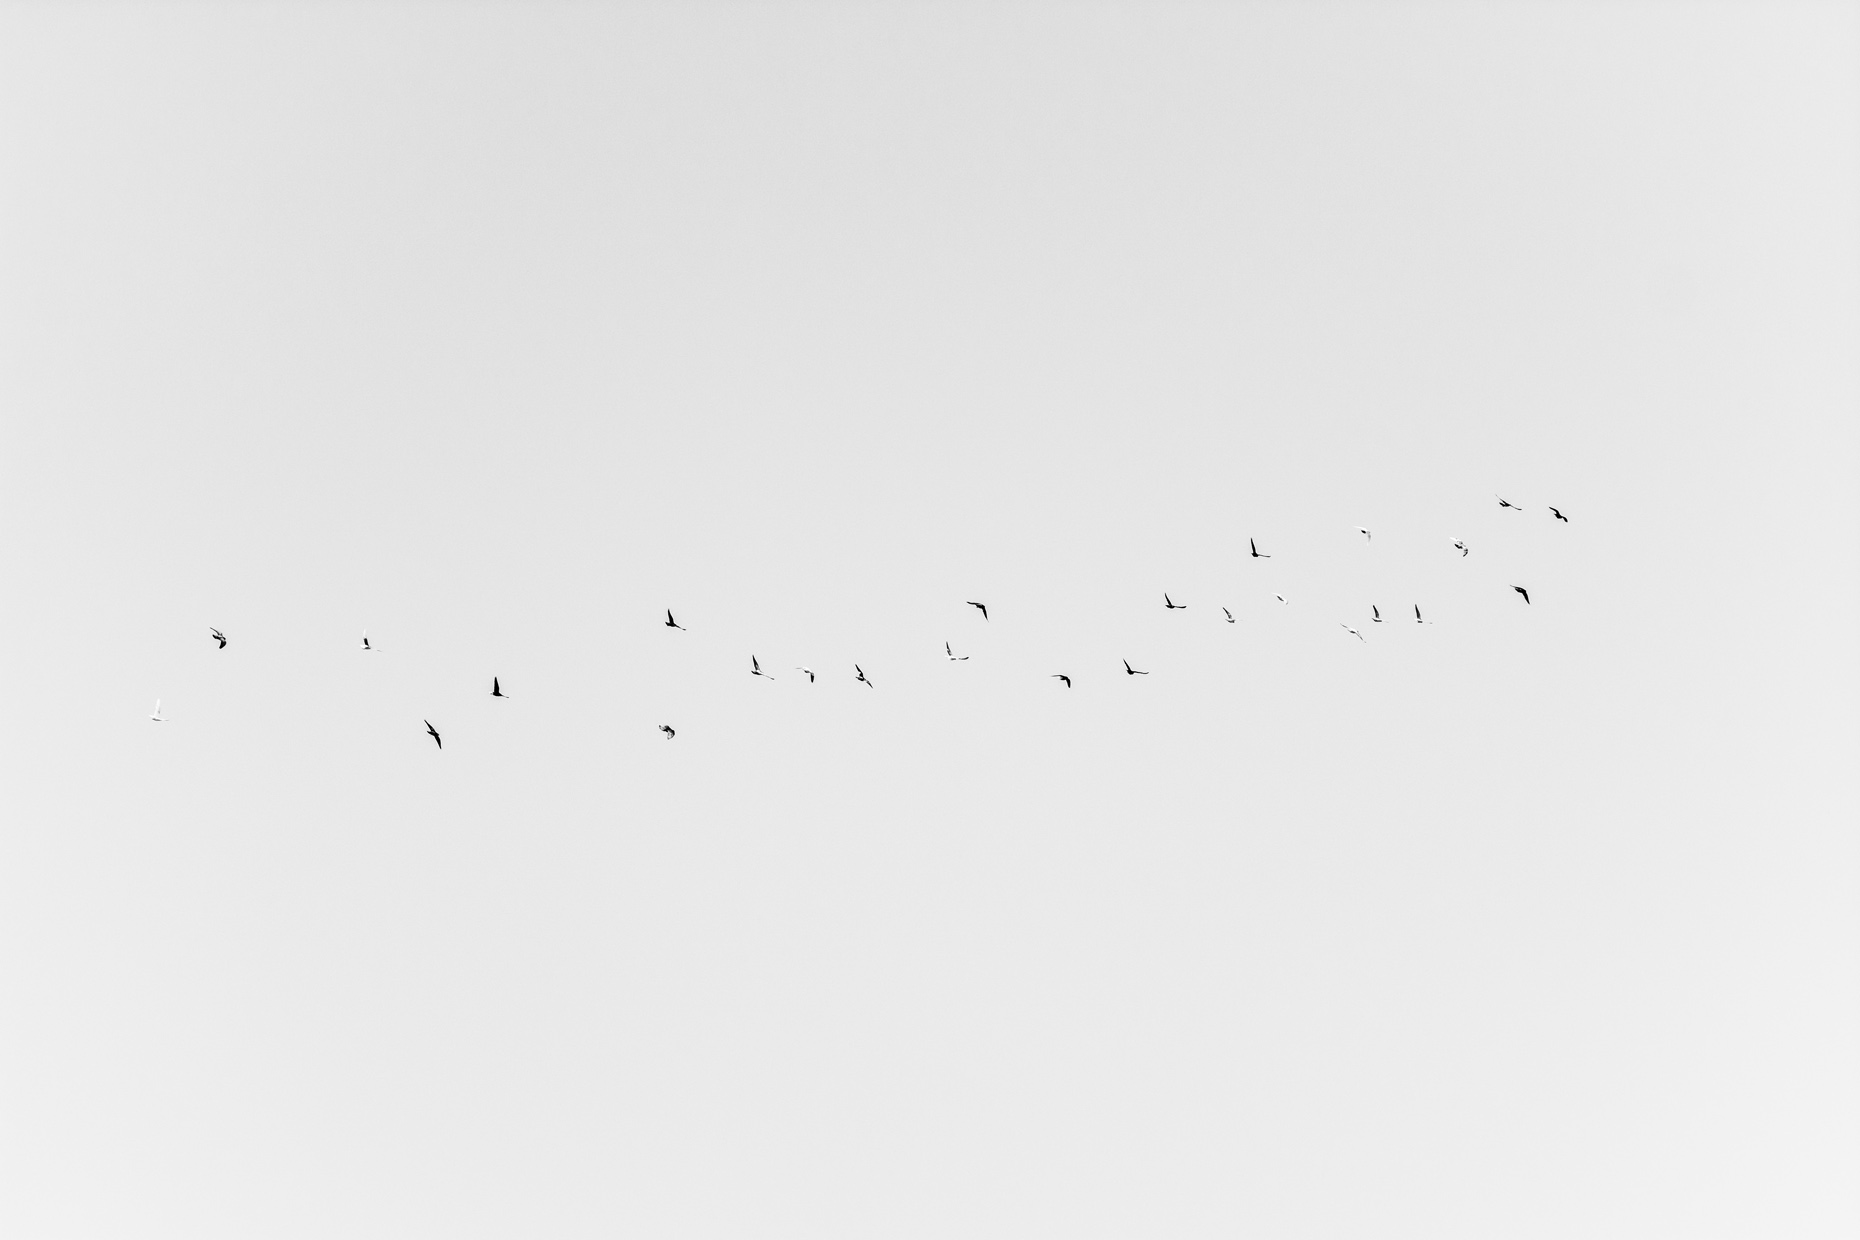 An image from the project 'Flight', a photography project by George Burke featured on blume